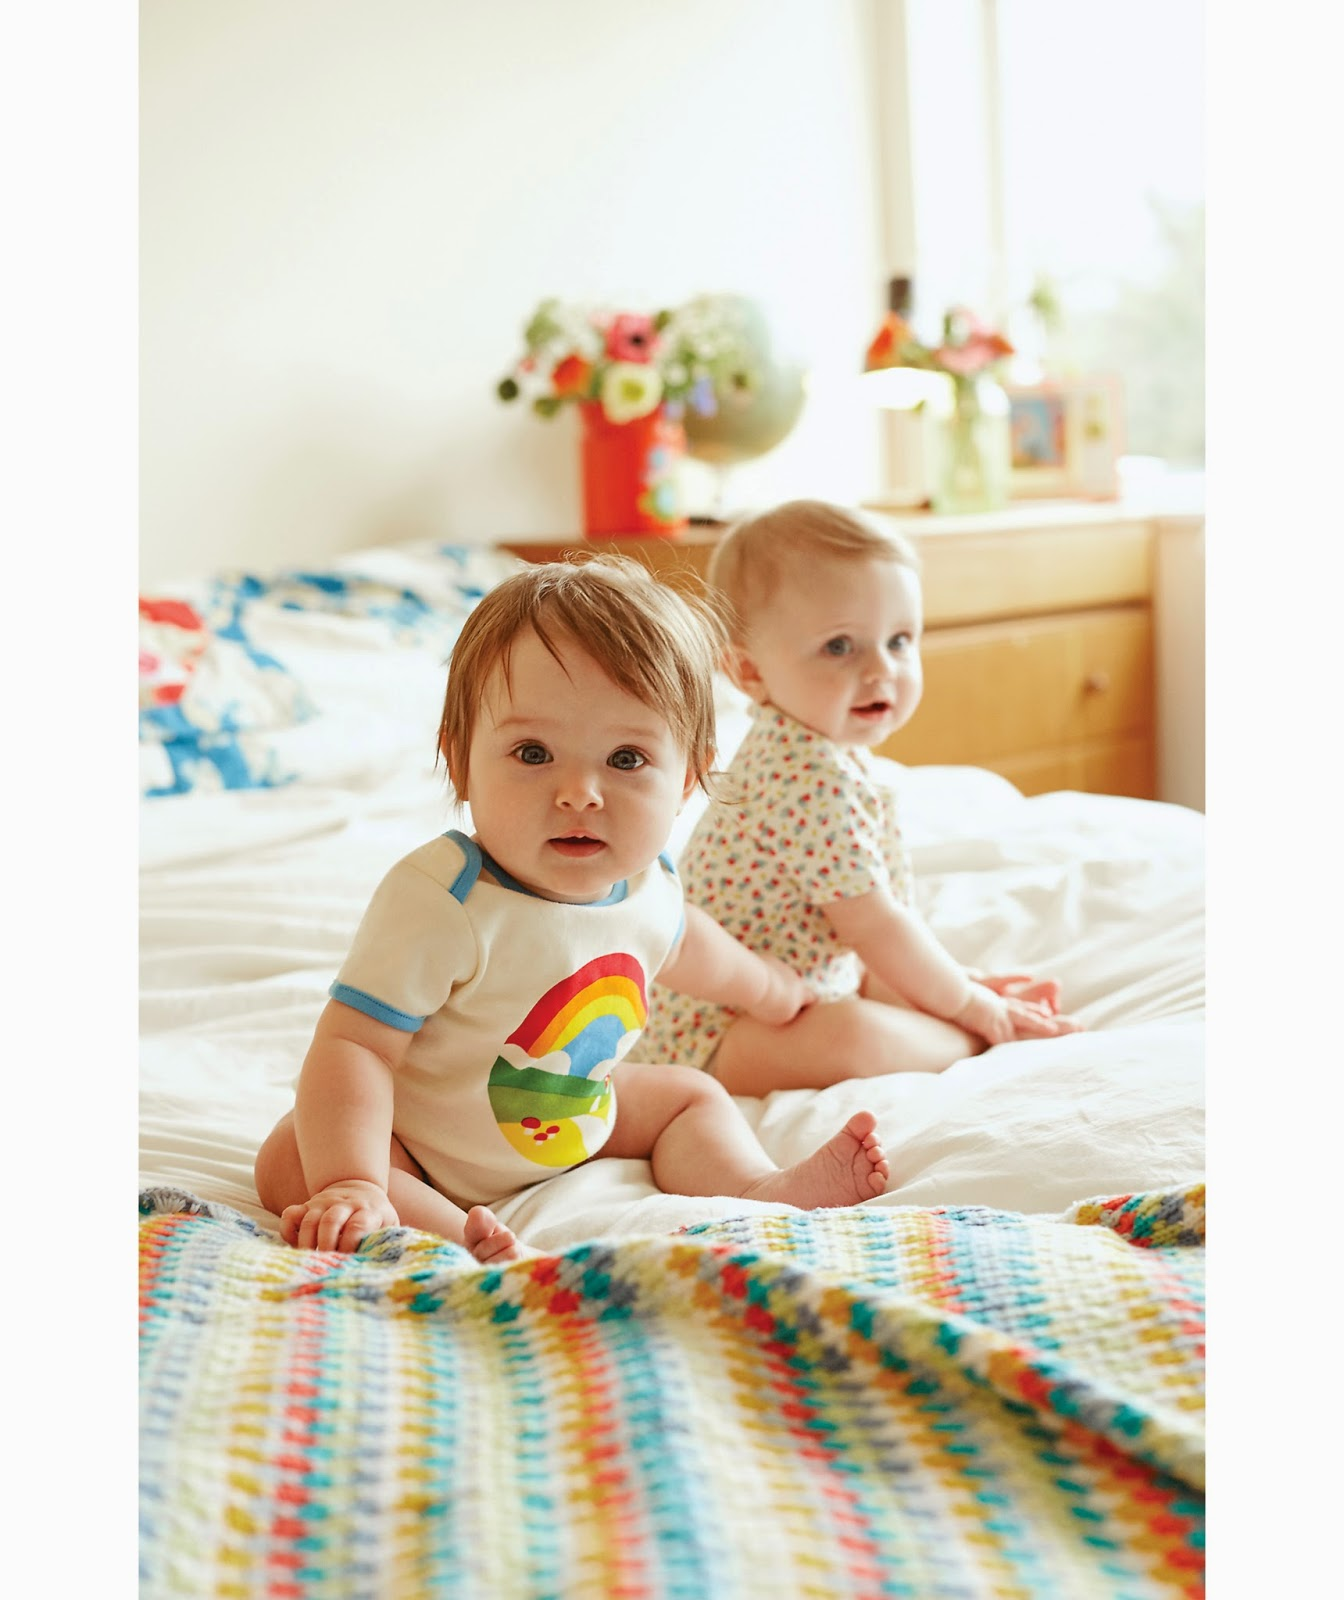 mamasVIB | V. I. BRAND: A Little Bird at Mothercare reveals a new baby for Jools Oliver… & £50 to spend!  |  mothercare | little bird | jool oliver | jamie oliver | fashion | kids style | new collection | baby collection | giveaway | £50 voucher | competition | little bird | jools | baby fashion | new range | mamasVIb | stylist | fashion news | little bird clothes | retro clothes | style | fashionista | toddlers | new born | voucher | shopping | blog | bonita turner mothercare |